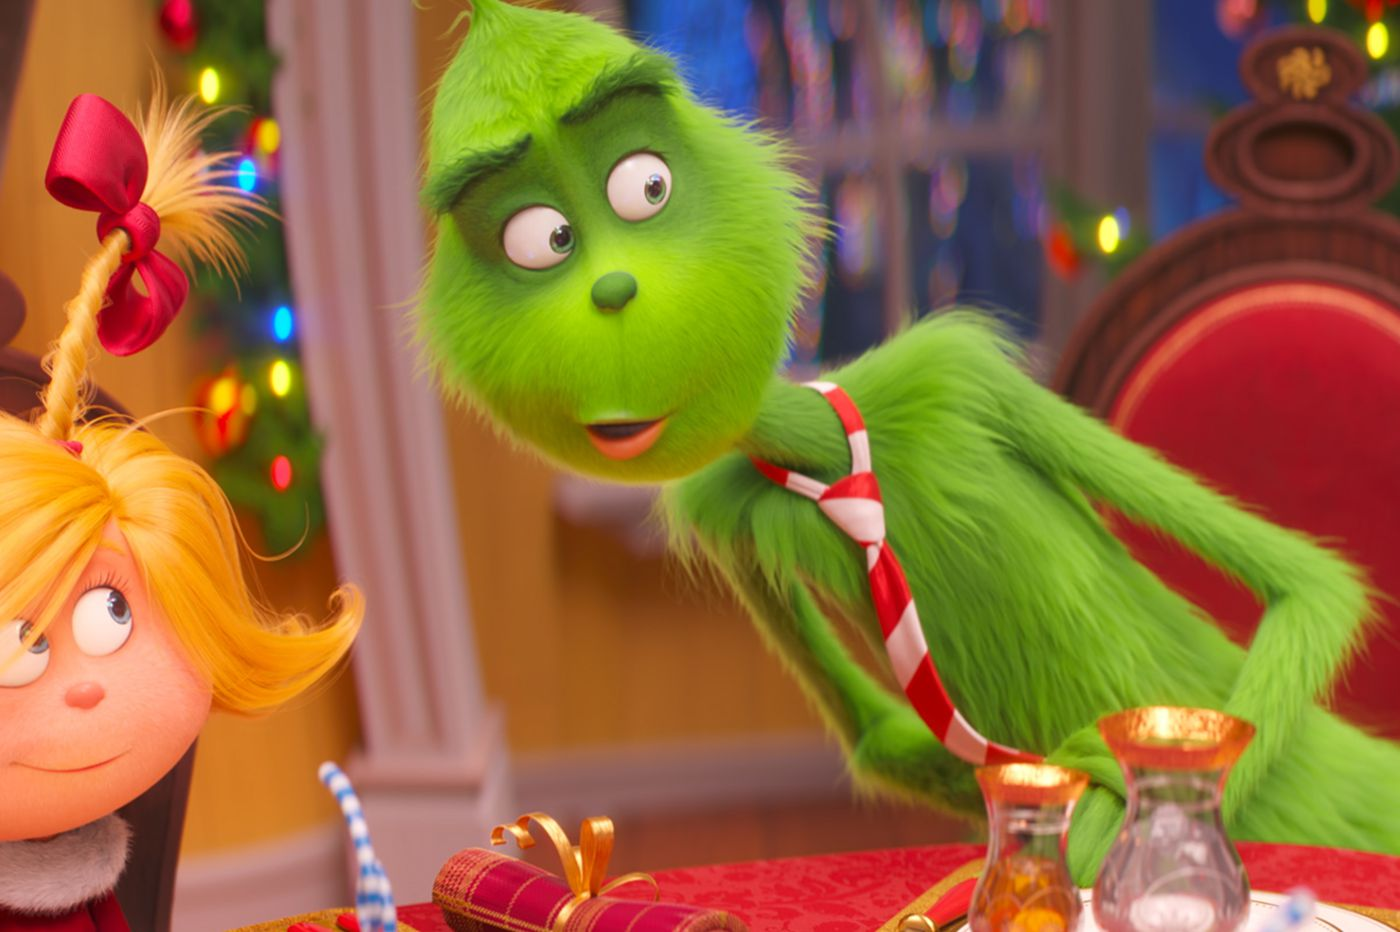 'Dr. Seuss' The Grinch' makes off with $66M at box office